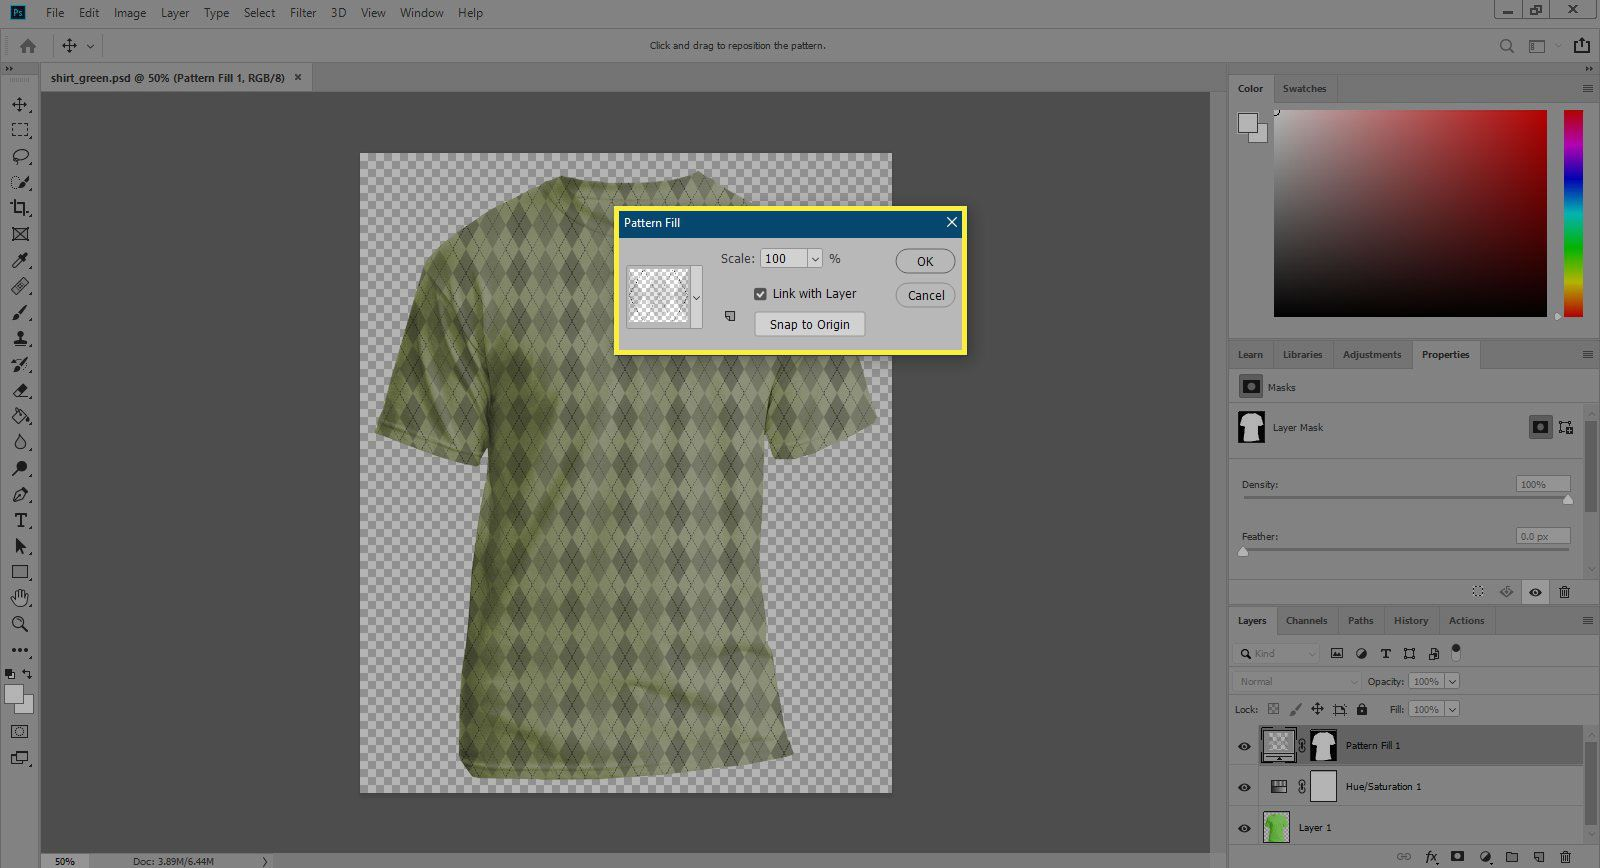 A screenshot of Photoshop with the Pattern Fill dialogue box highlighted